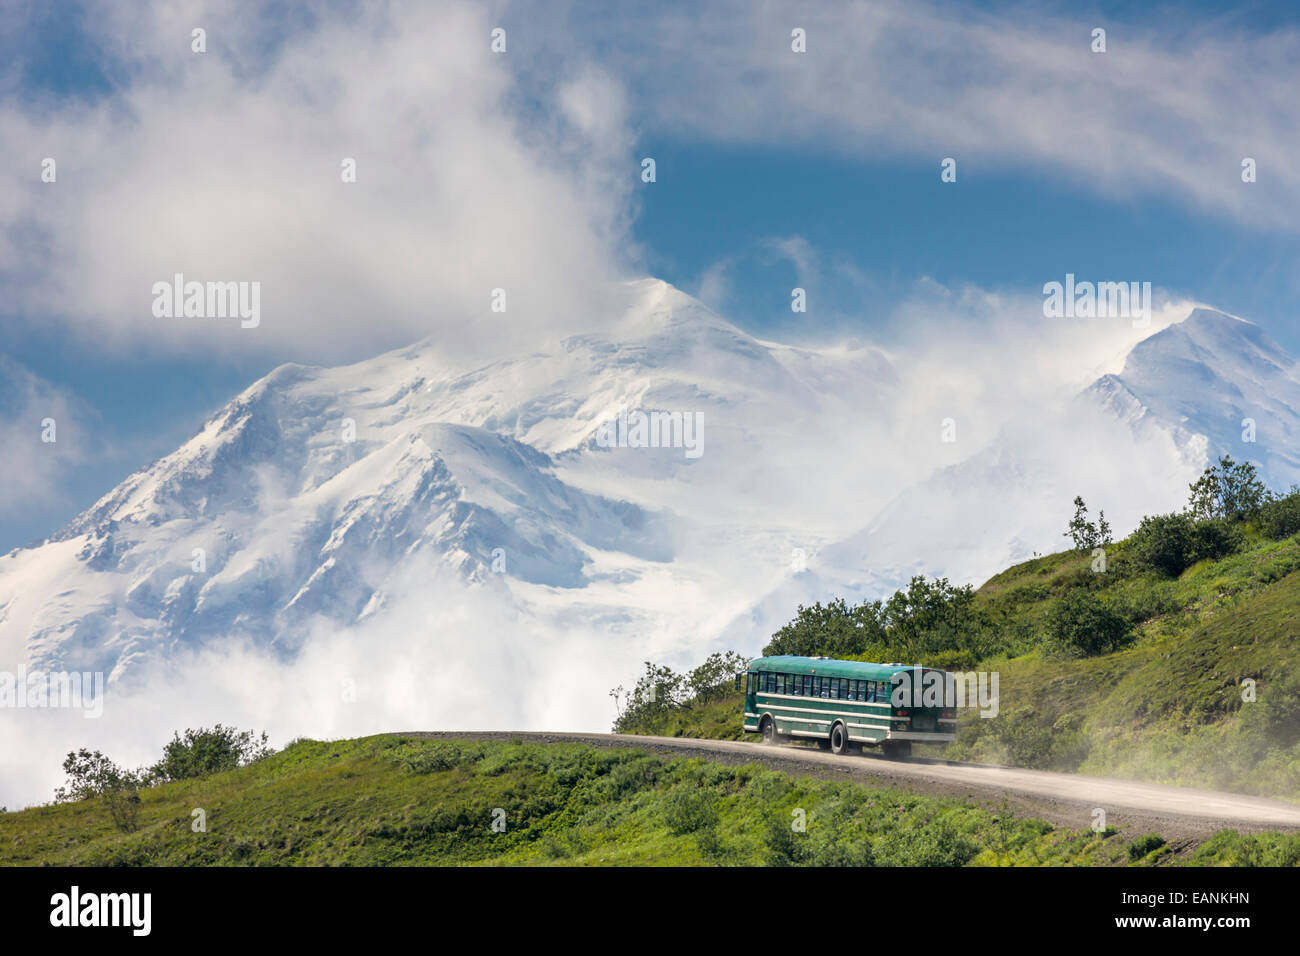 Tour Bus Travels The Park Road With Mt. Mckinley In The Background, Denali National Park, Interior, Alaska. - Stock Image